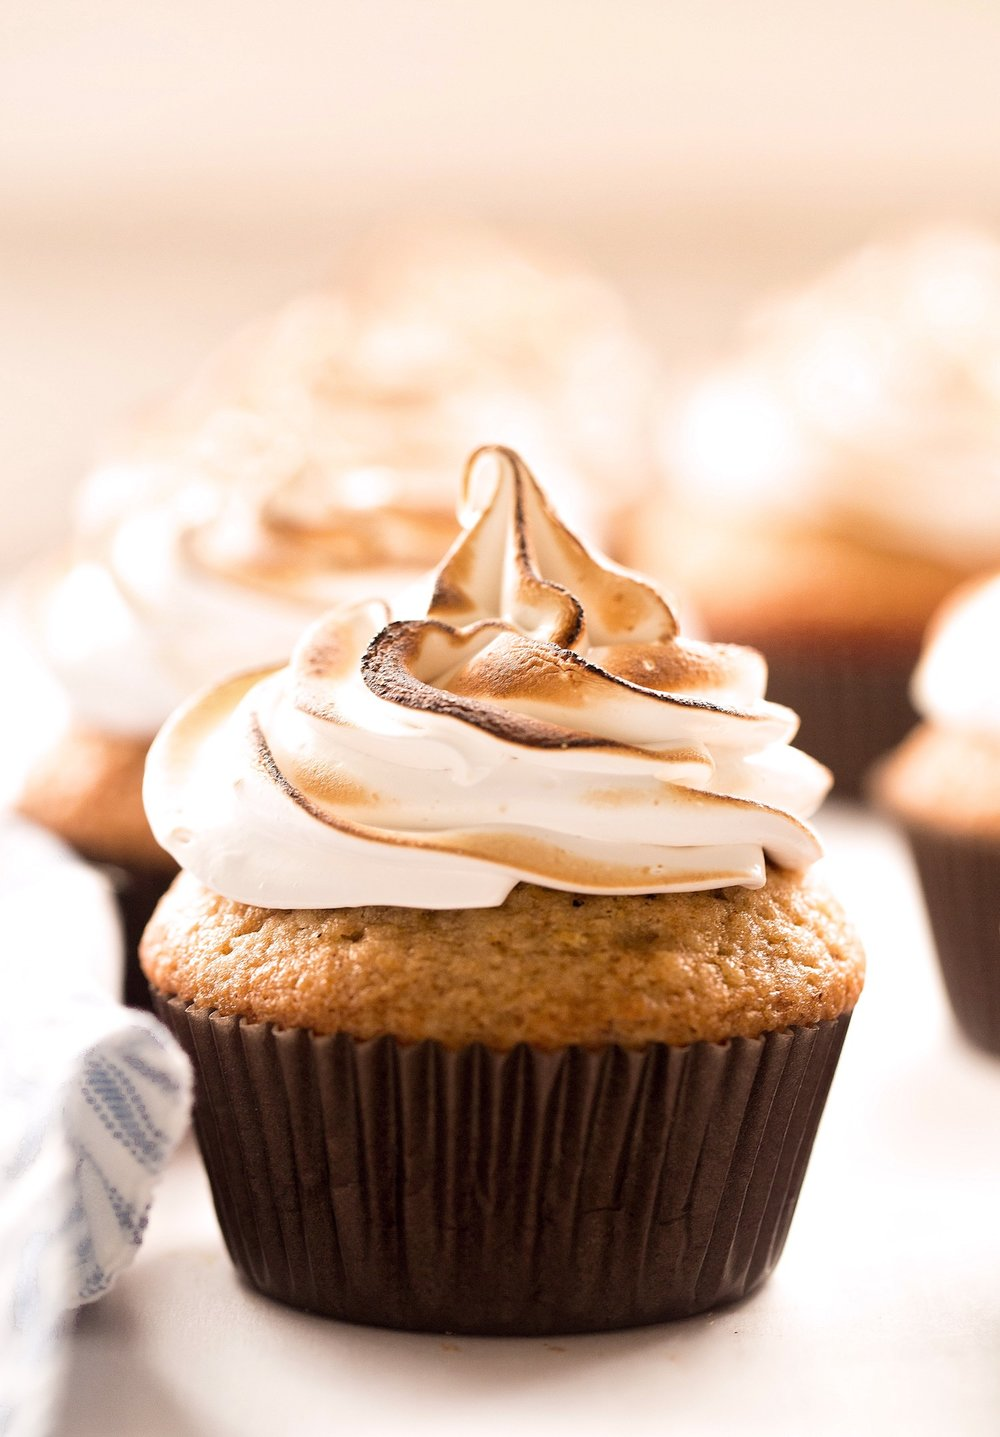 Chai Cupcakes with Meringue Frosting: soft, moist, fluffy cupcakes filled with warm chai spices and topped with a glossy, sweet, marshmallow-like meringue frosting. Dairy-free! | TrufflesandTrends.com